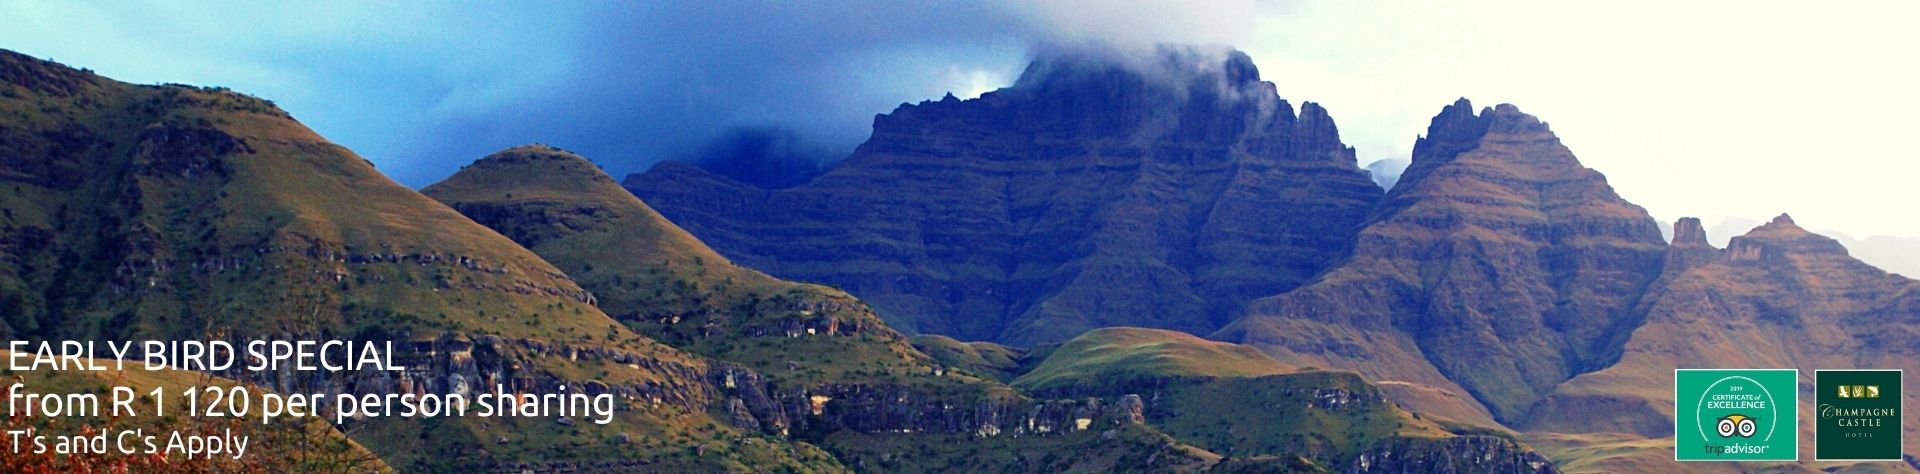 early bird accommodation special in the drakensberg